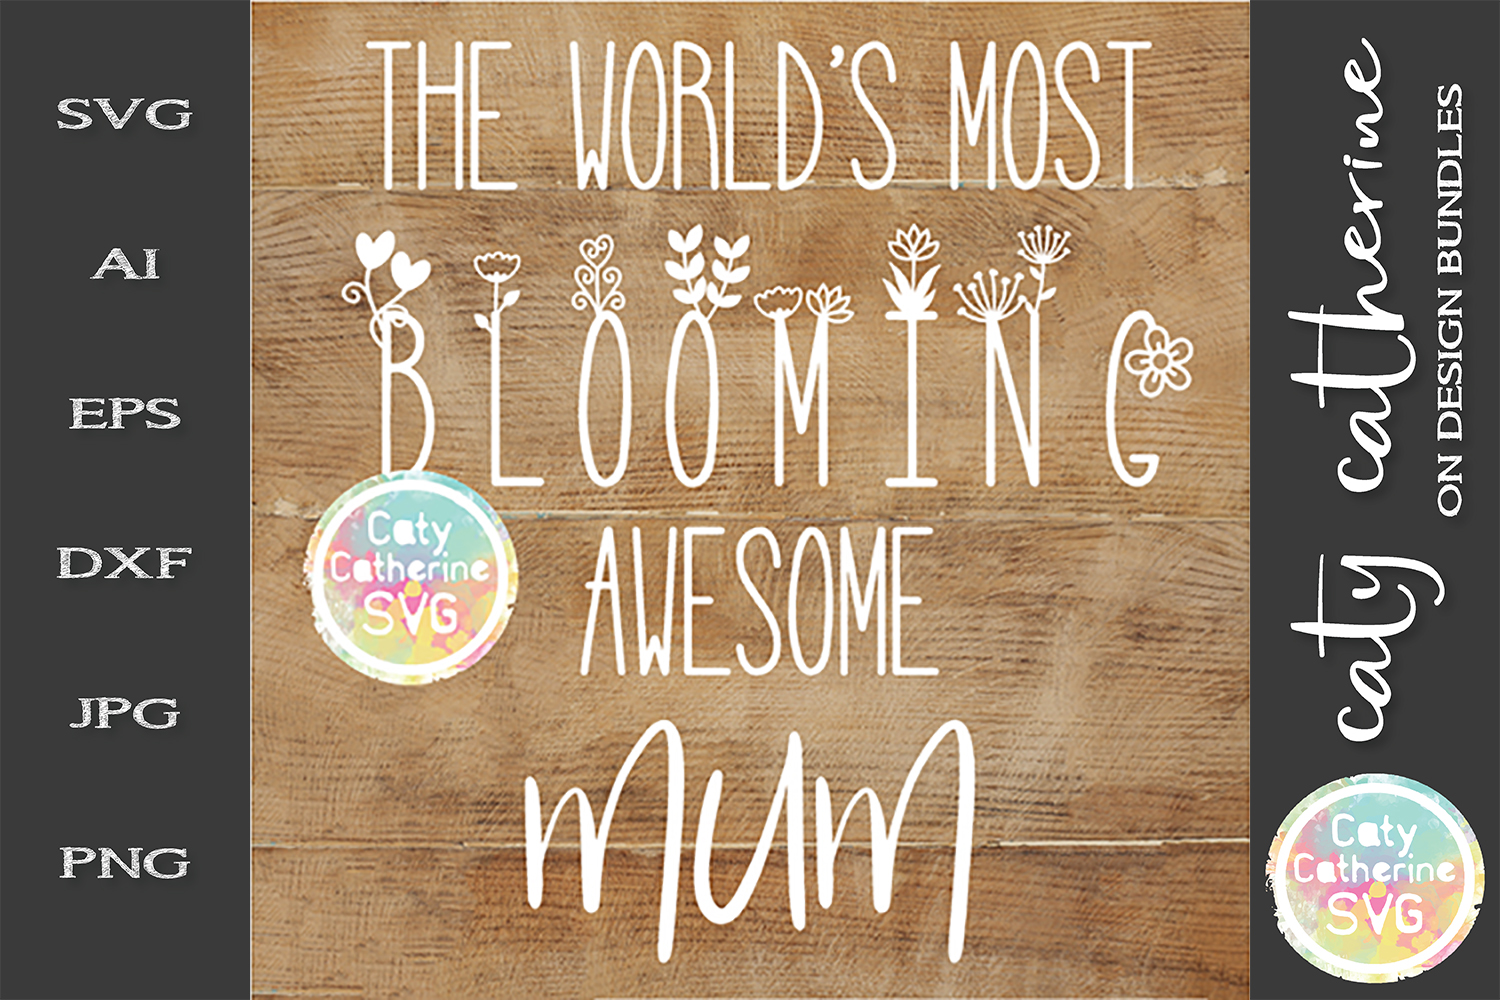 The World's Most Blooming Awesome Mum SVG example image 1